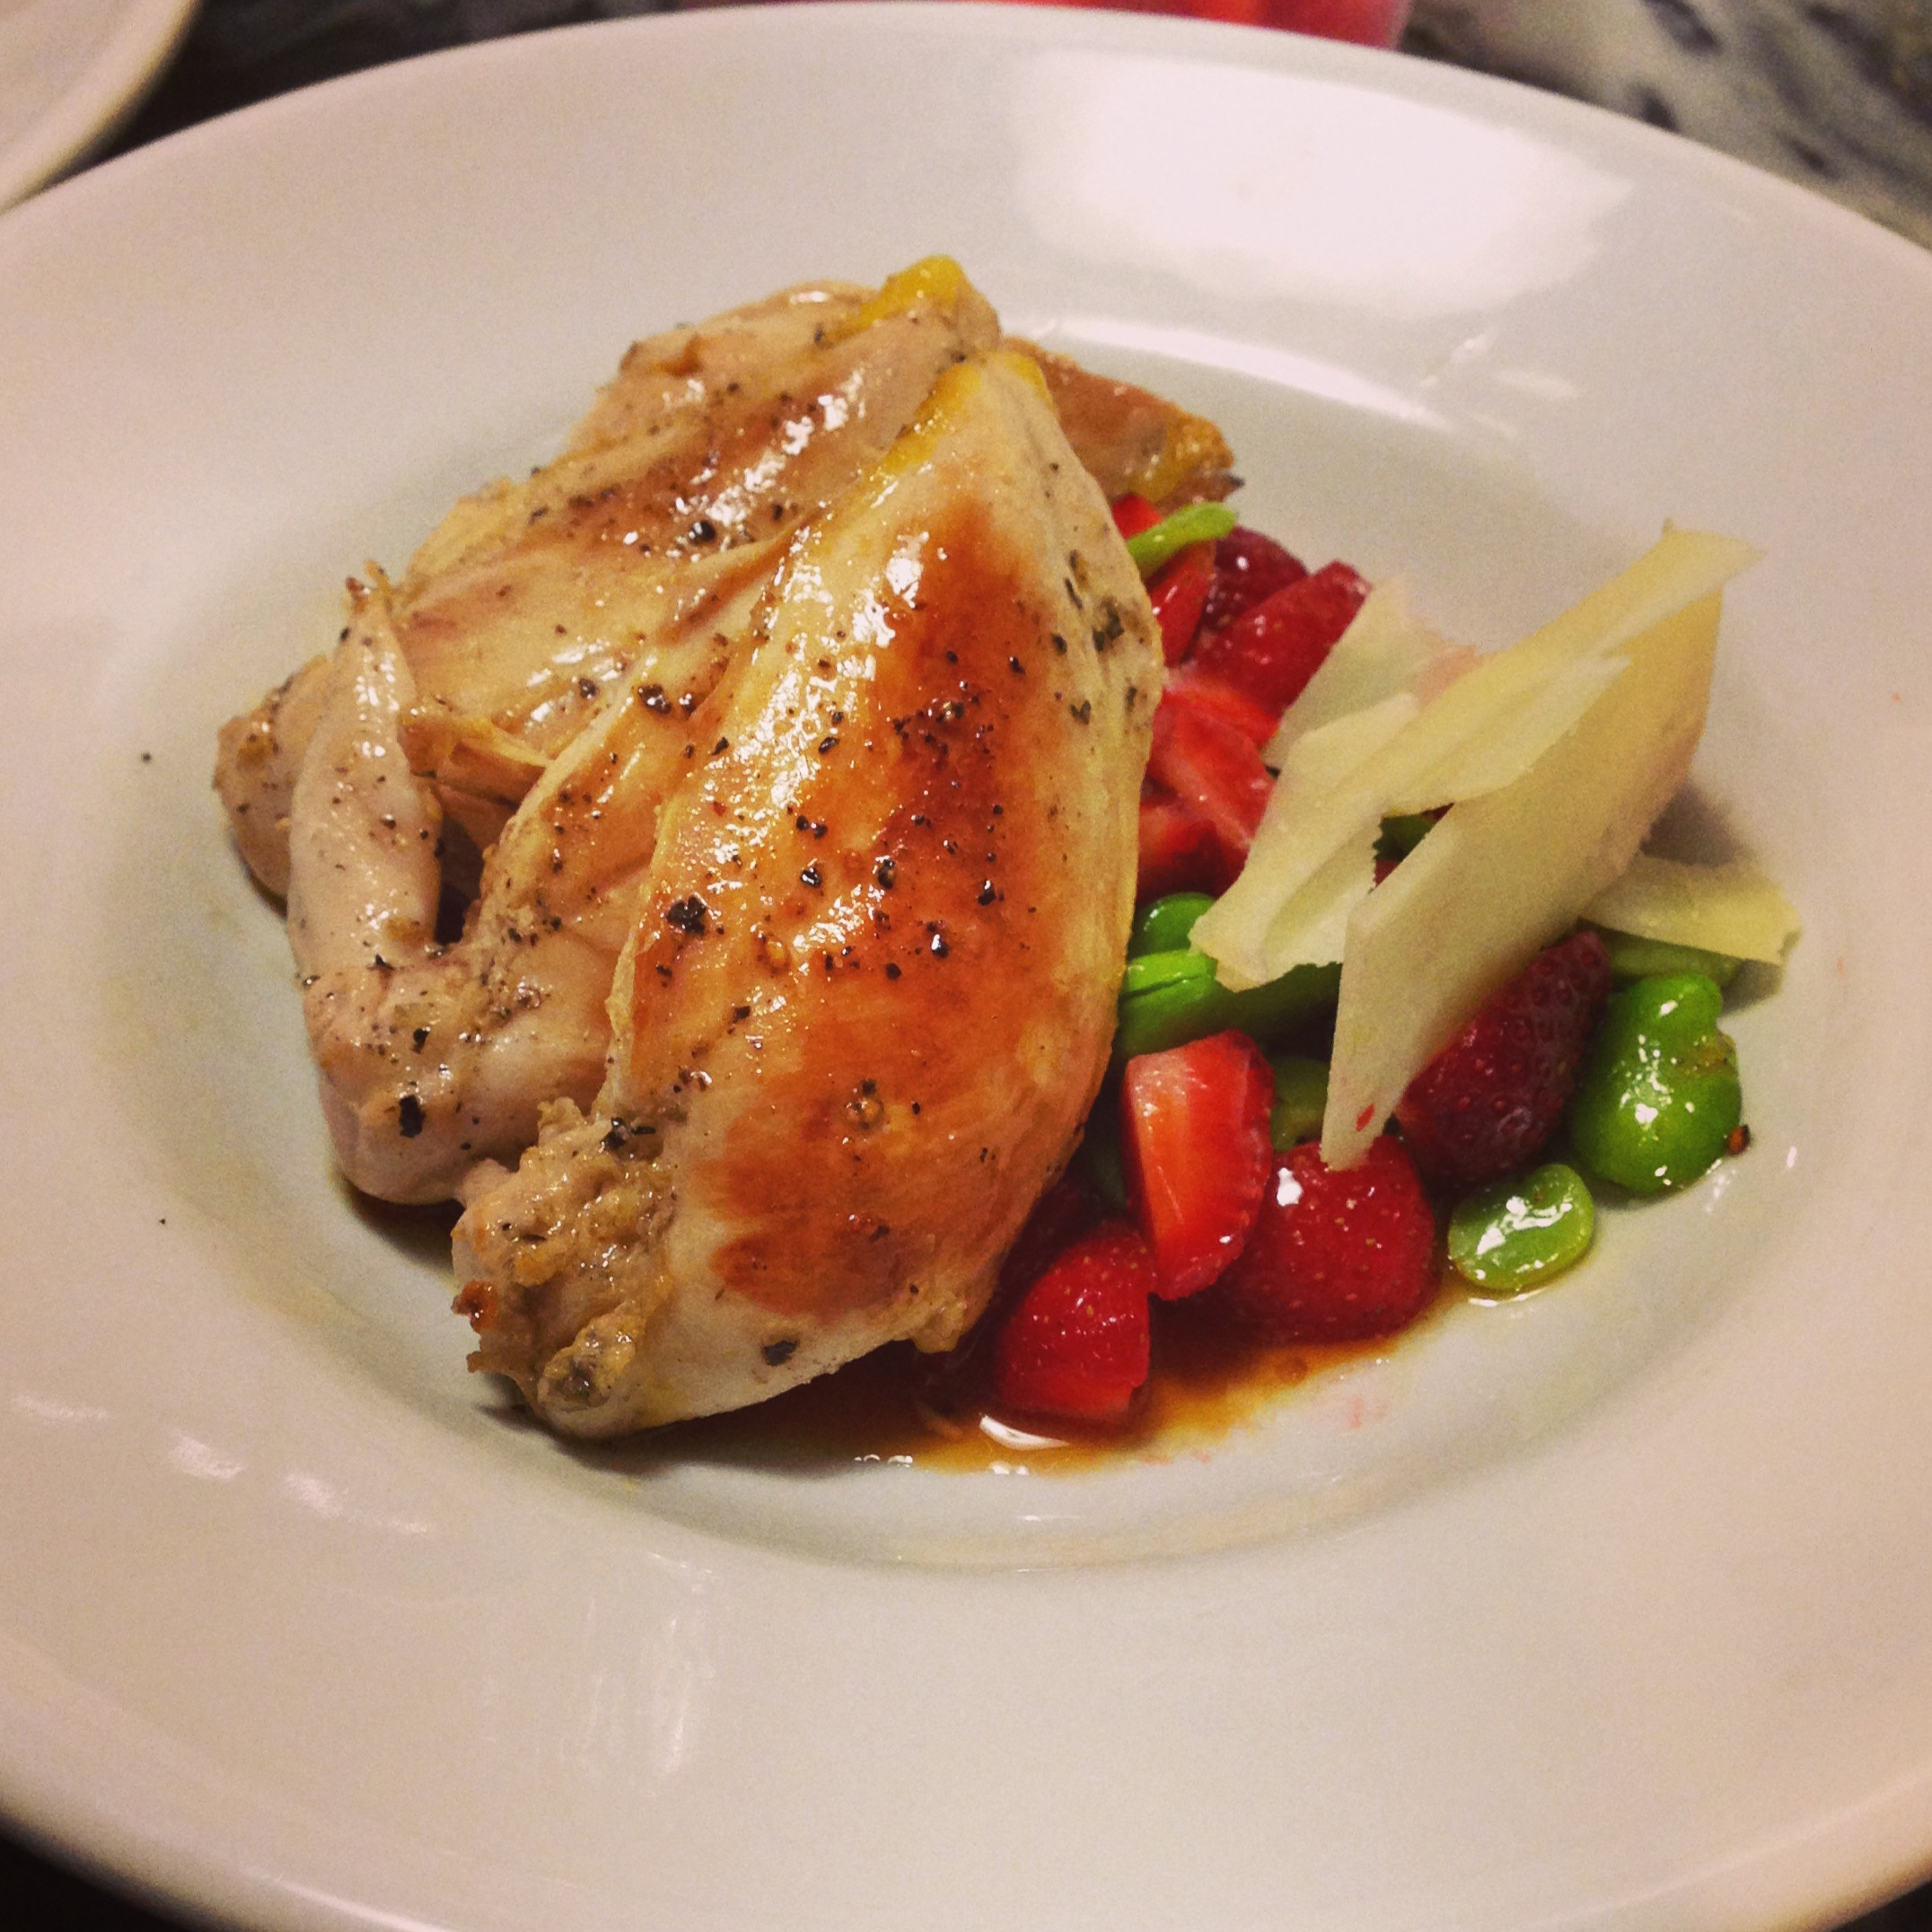 Lemon pepper roast chicken with fresh organic strawberries, edamame and Pecorino Romano